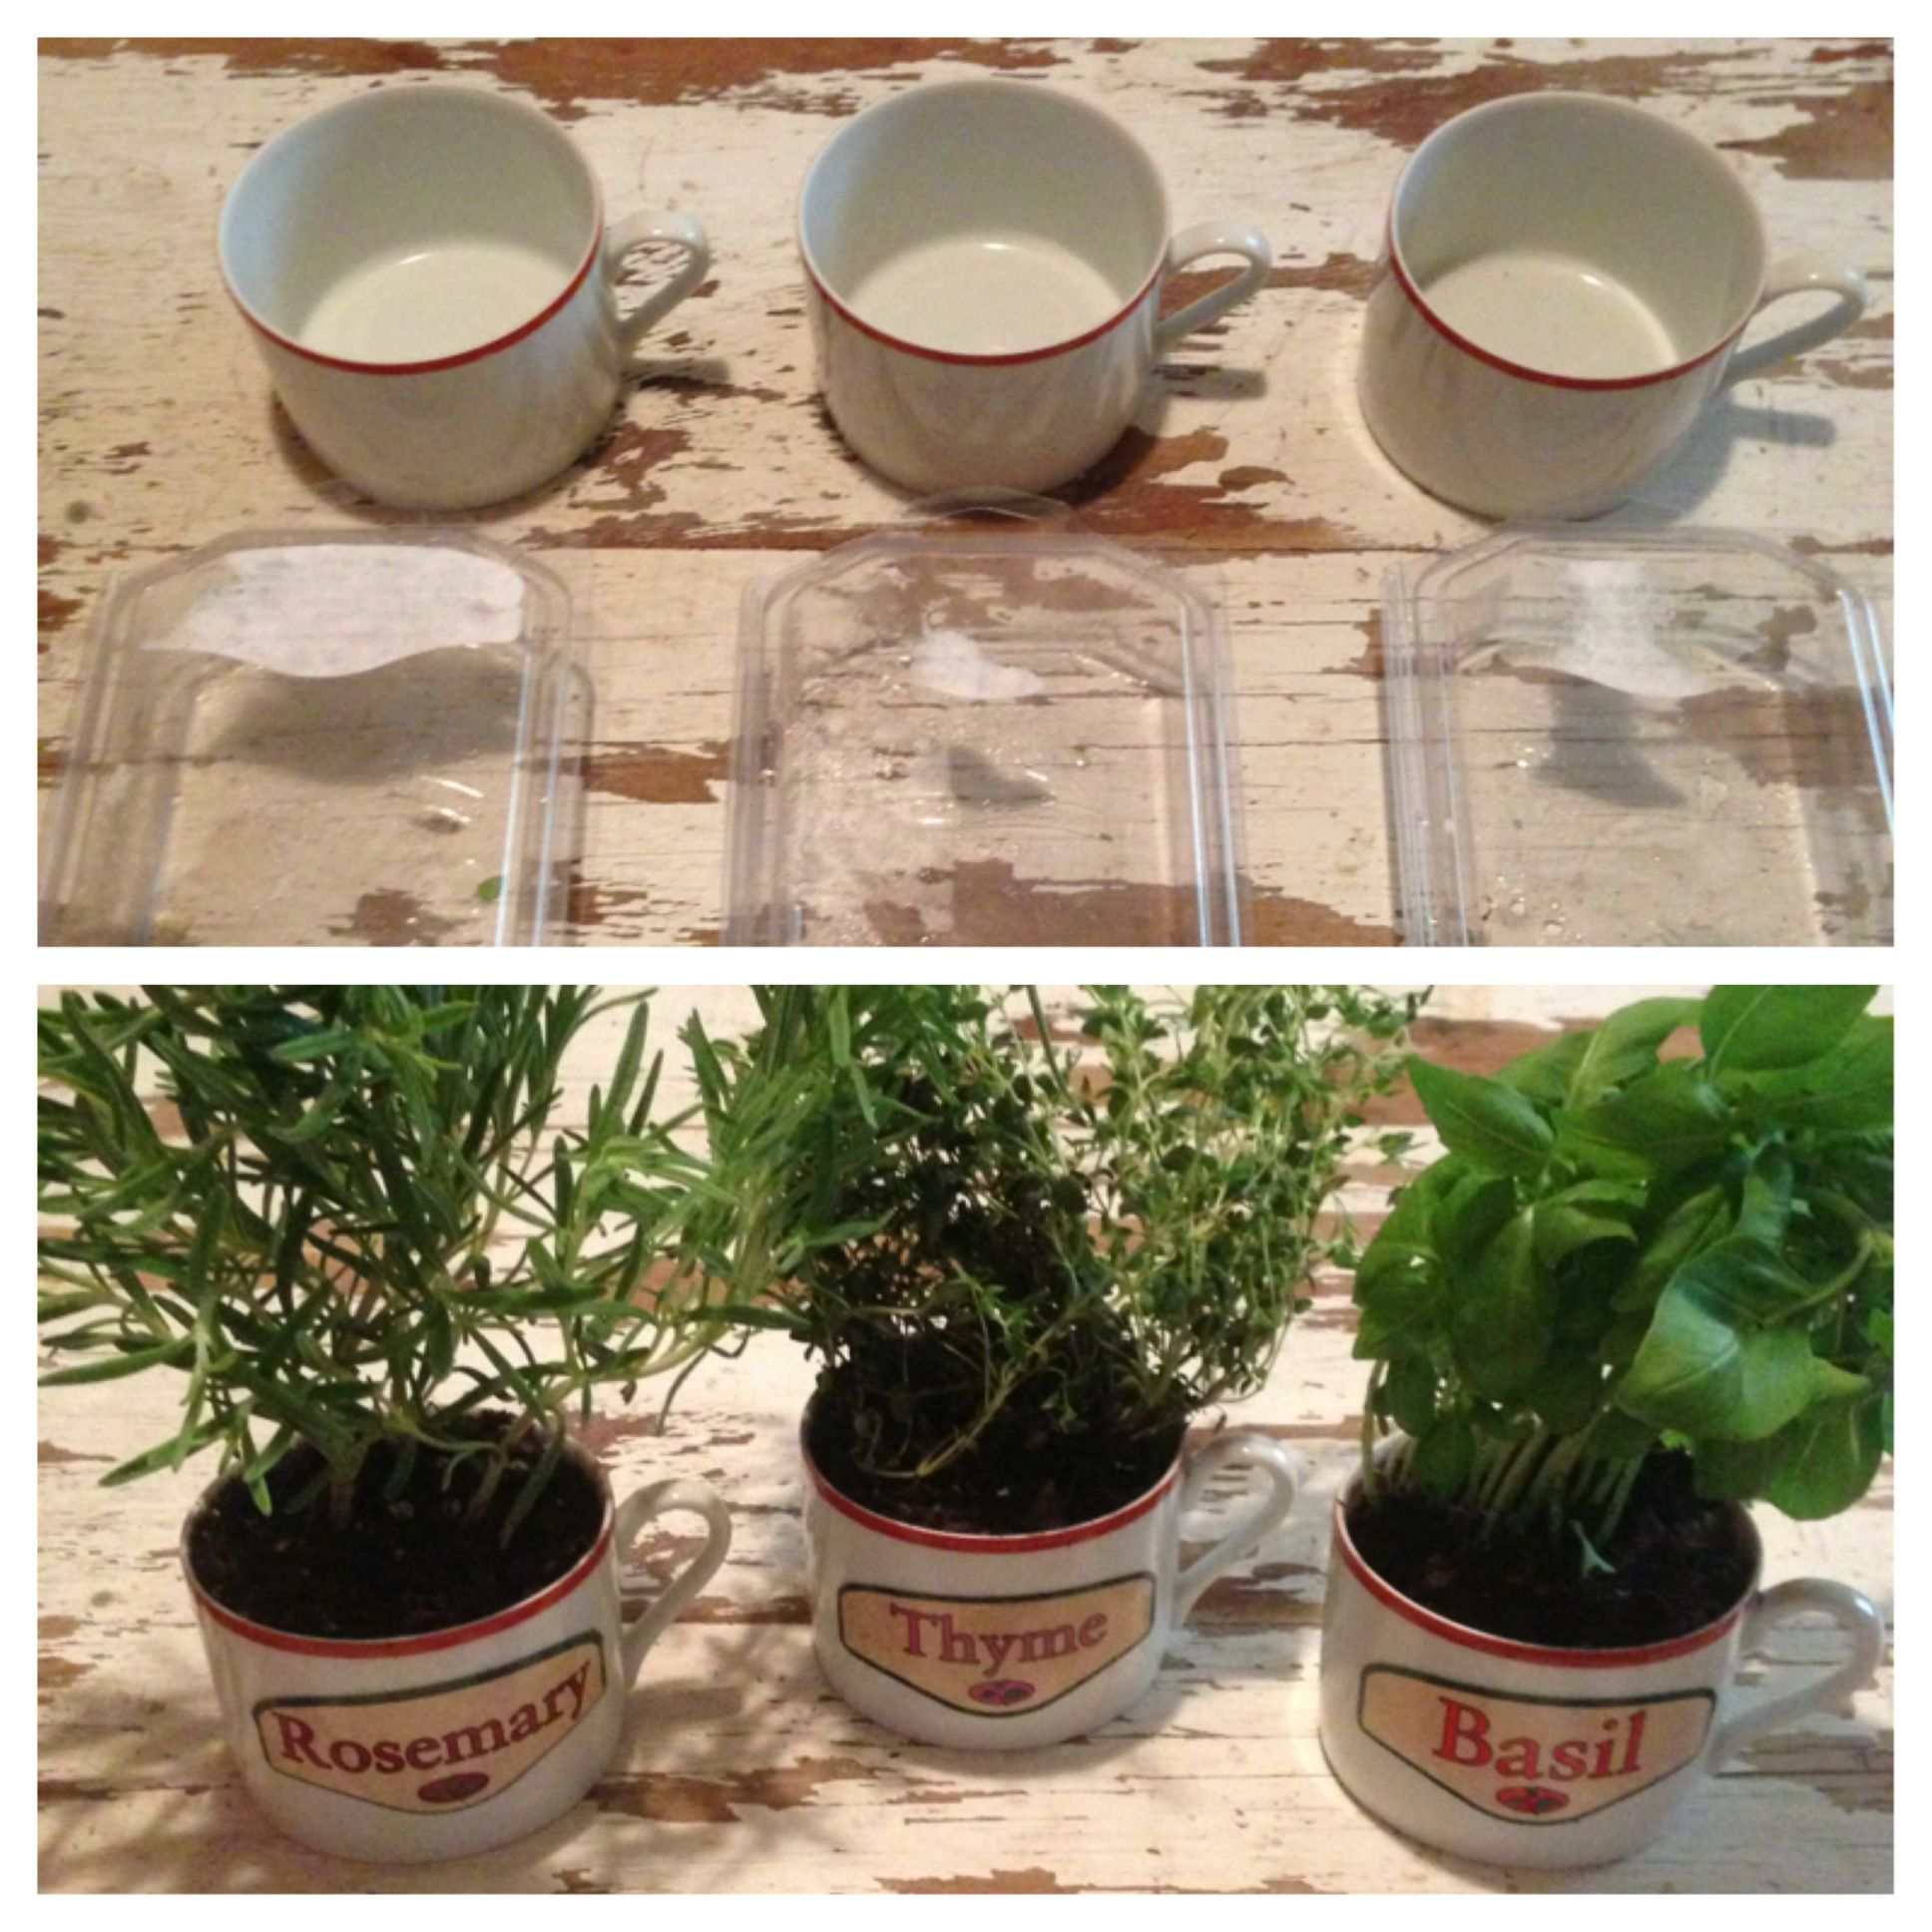 All you need is three coffee mugs and three herbs with labels on box.